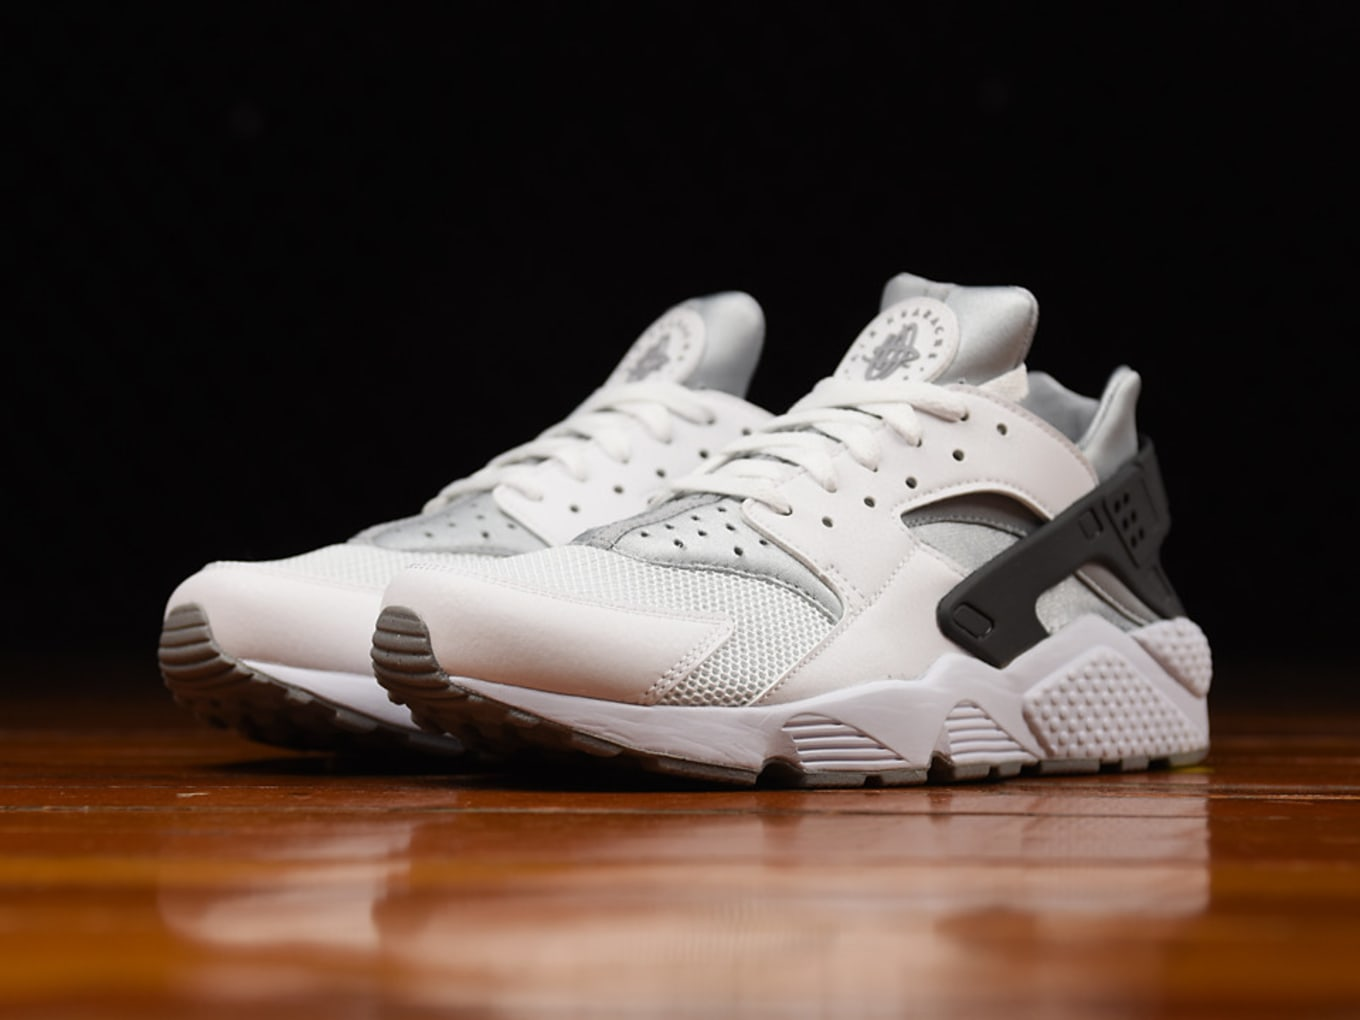 Nike Air Huarache White Wolf Grey-Dark Grey 318429-103   Sole Collector 1ea4f350e2a1